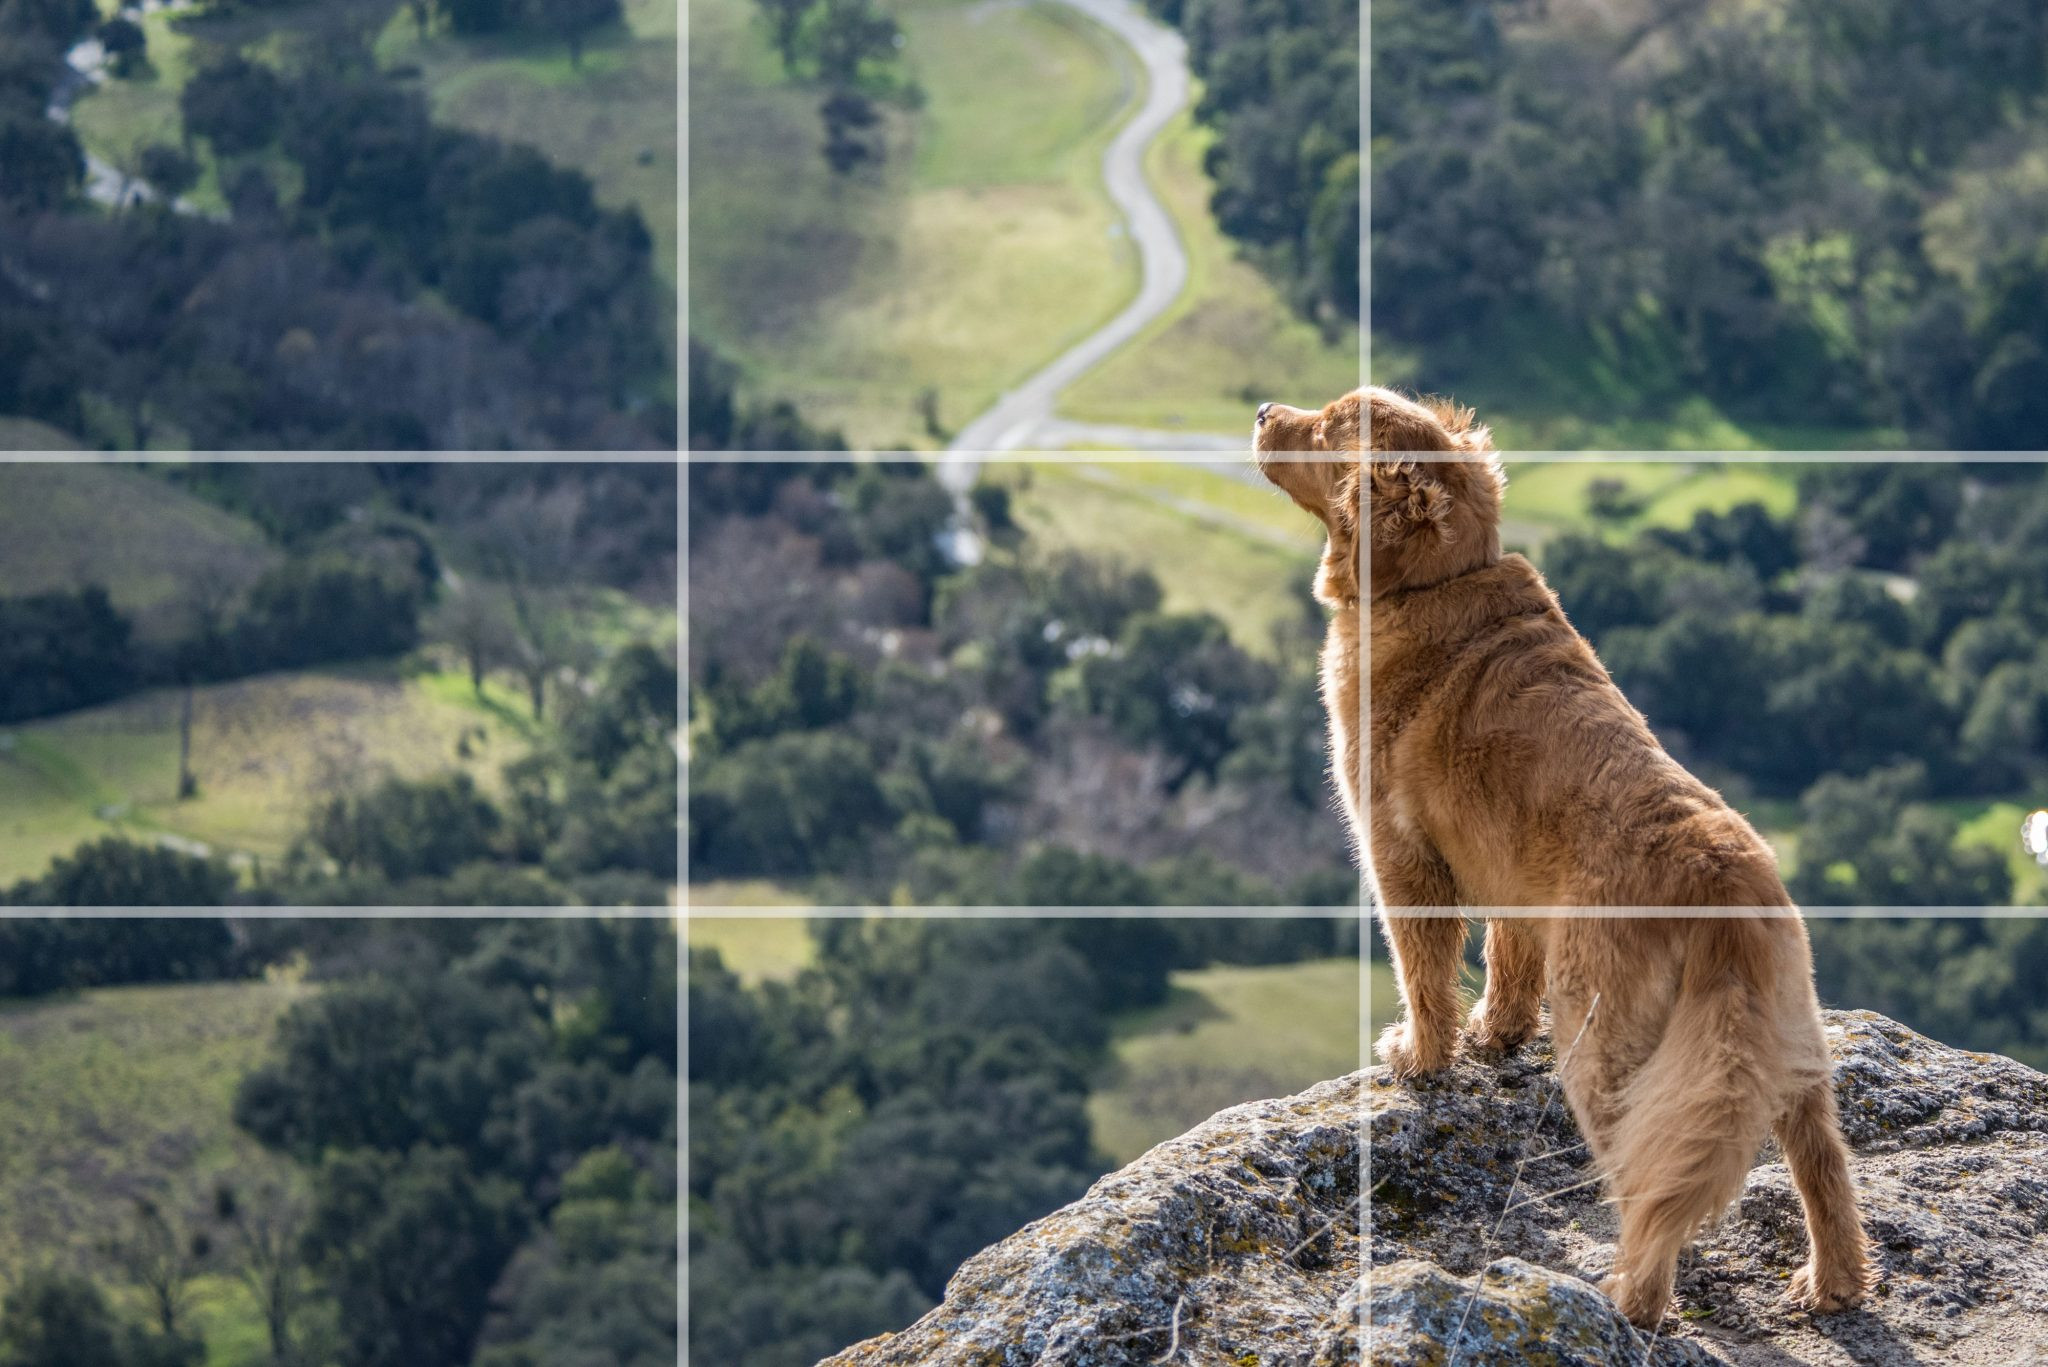 Mastering the rule of thirds in photography